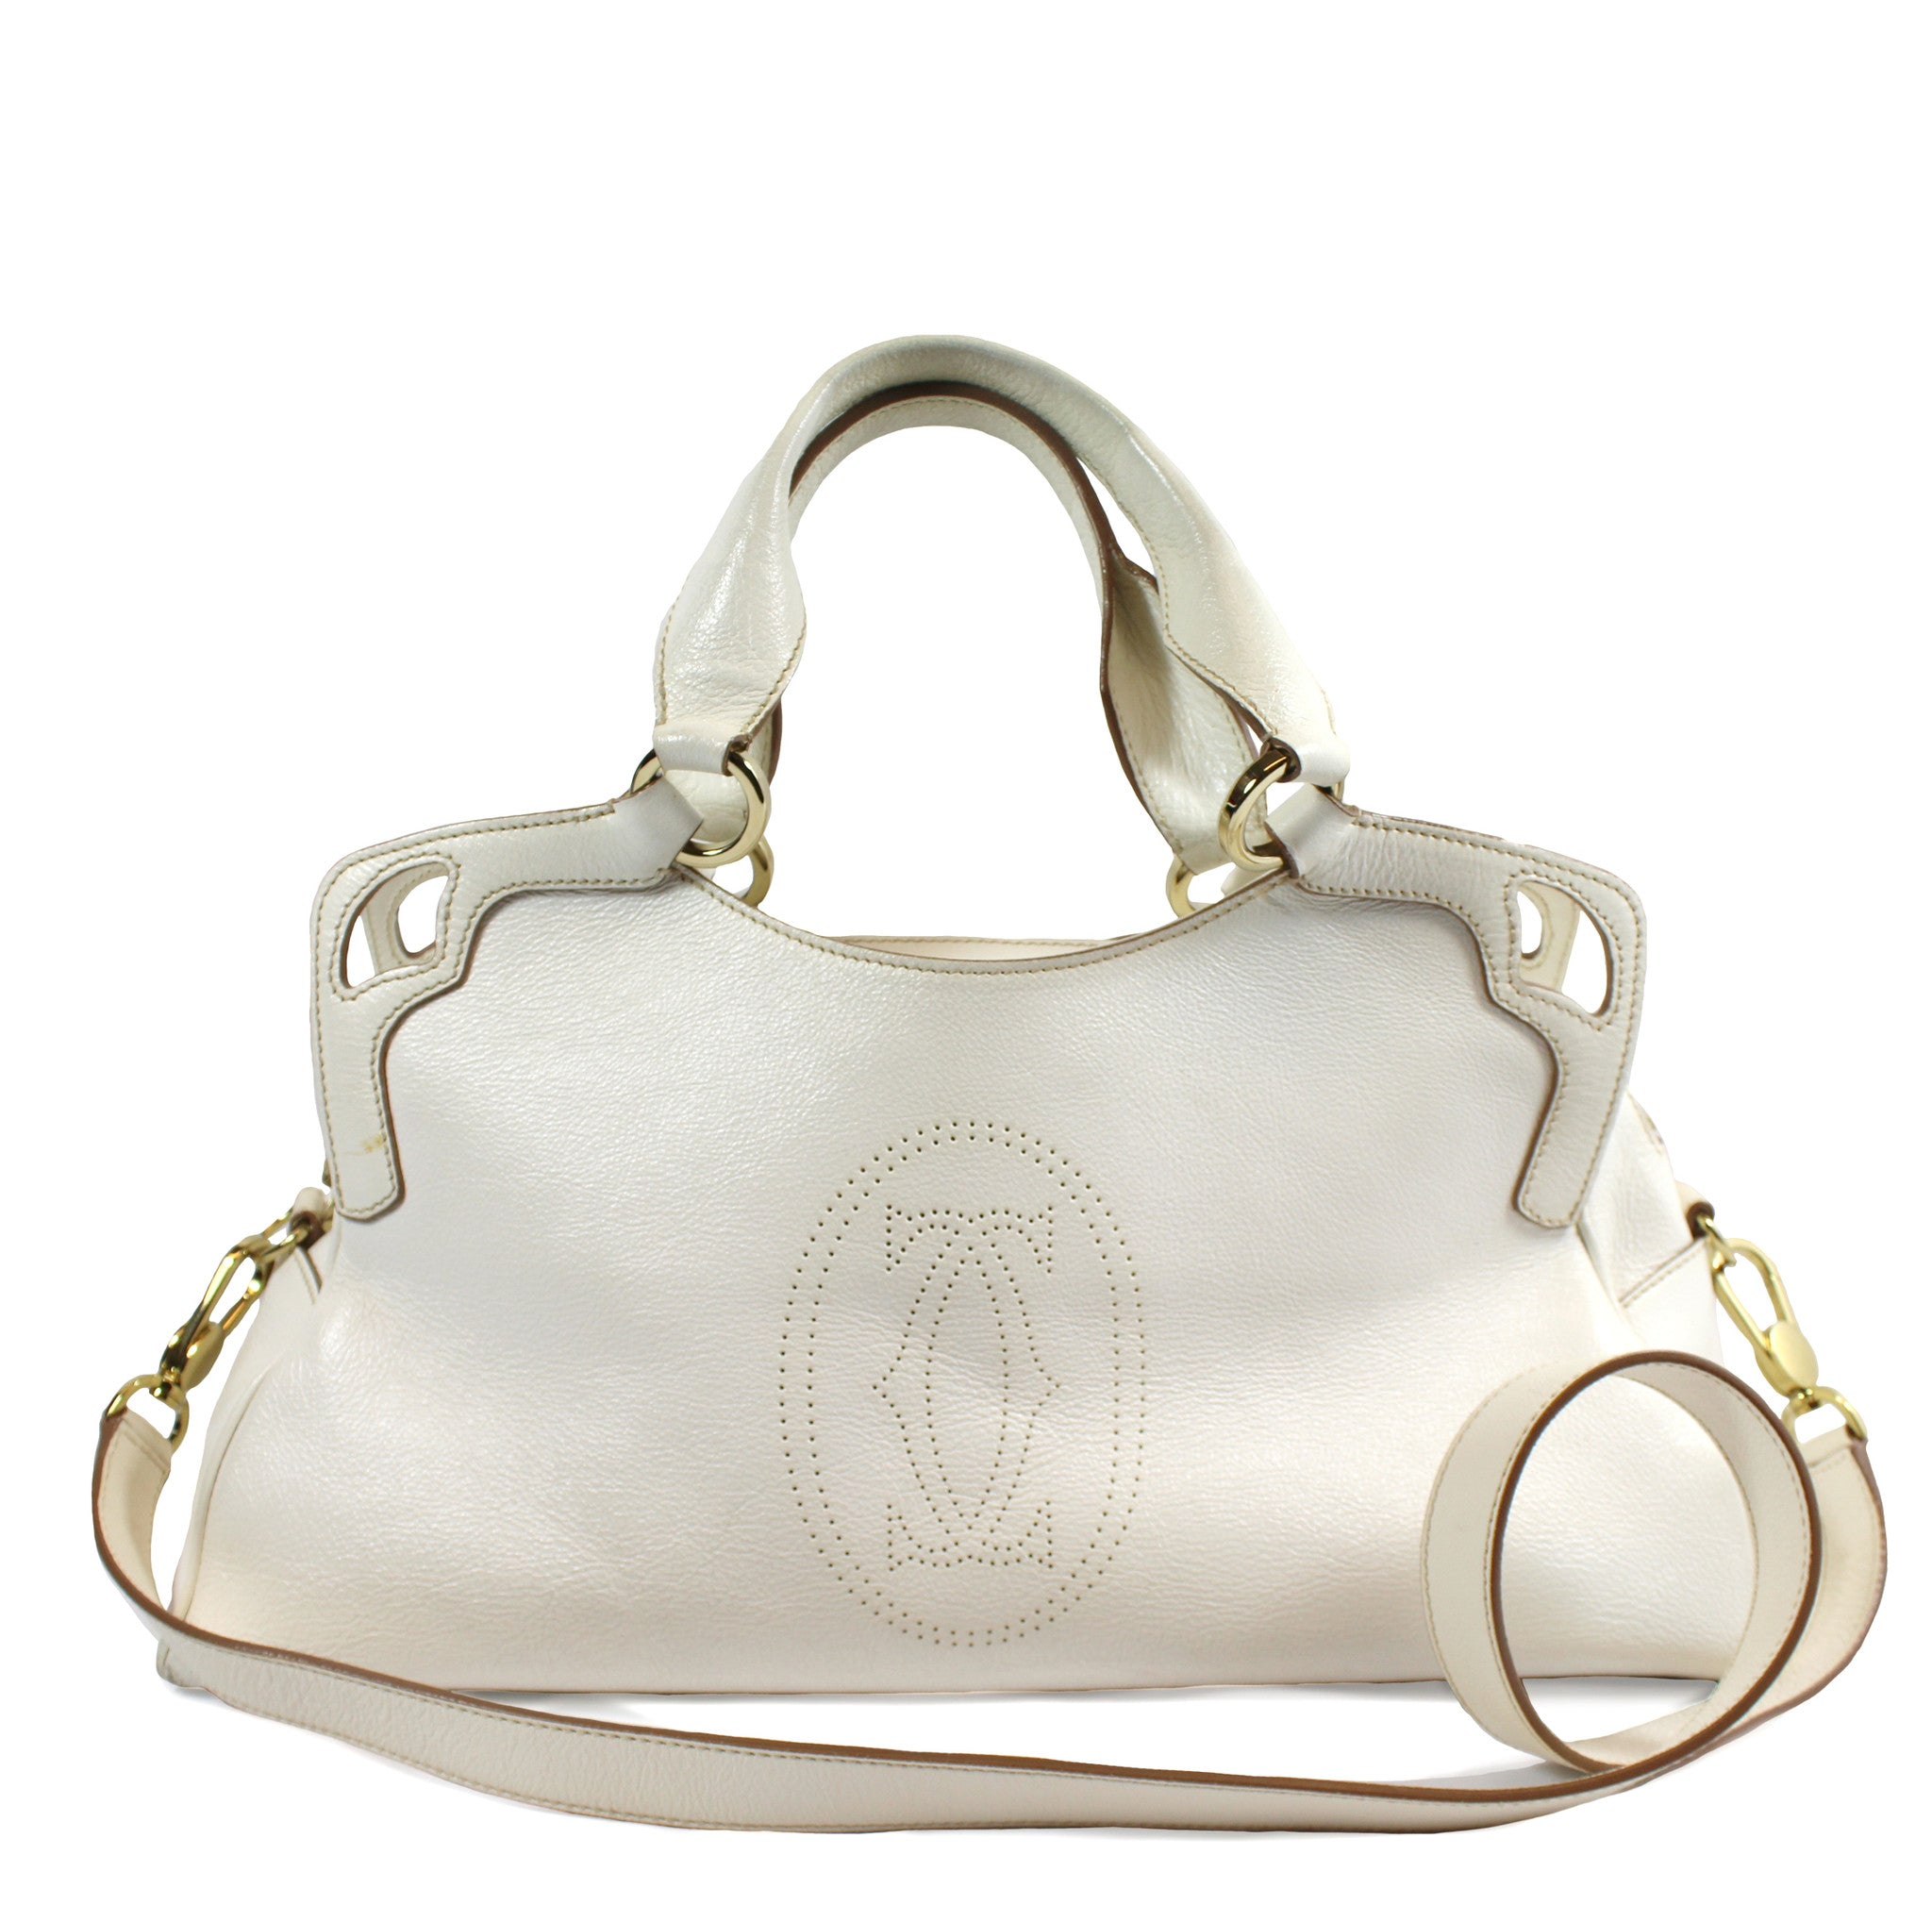 Cartier 'Marcello' Cream Leather Handbag